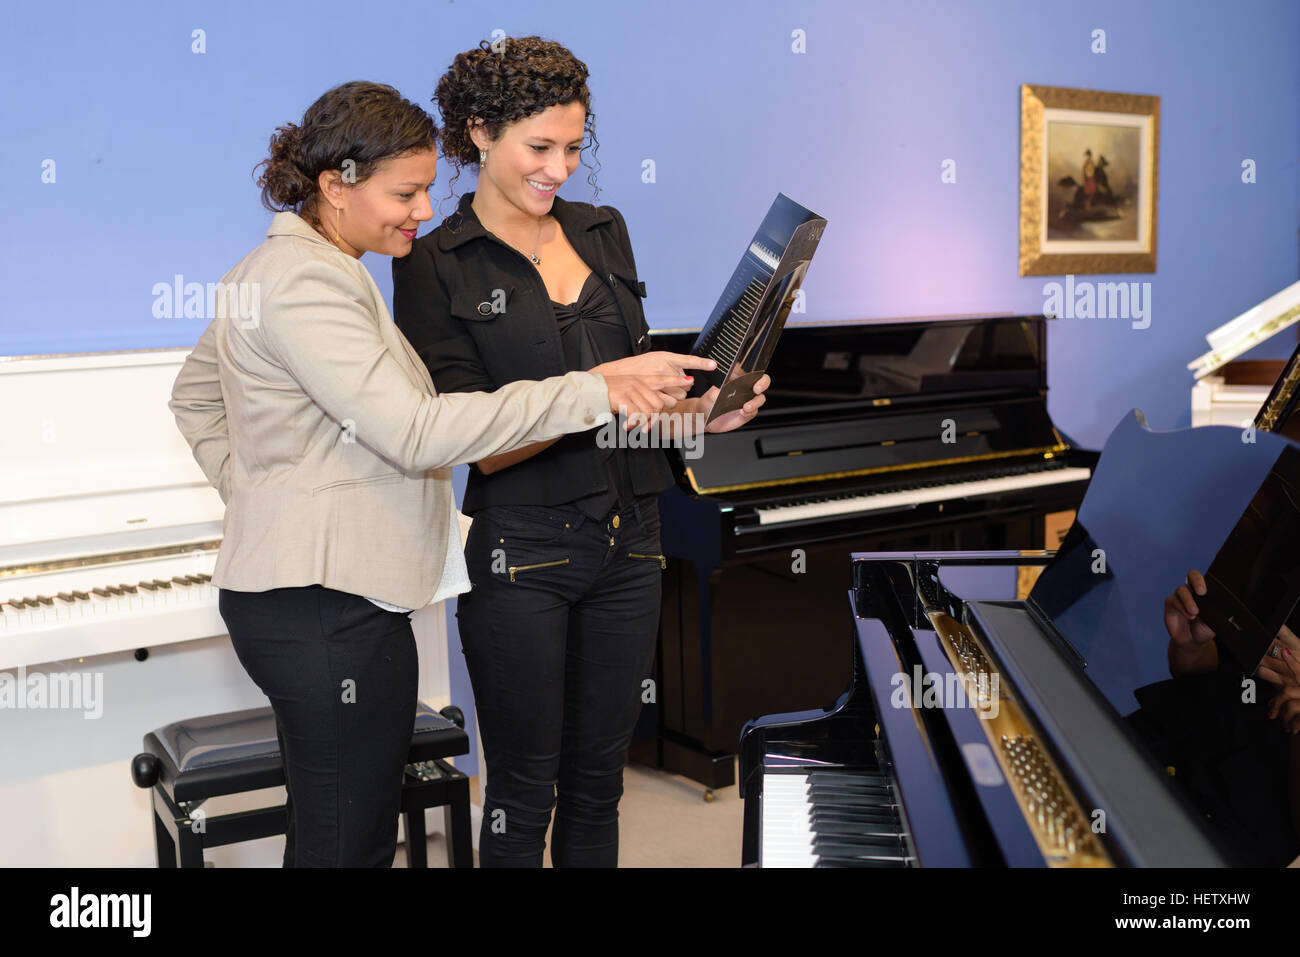 in the piano shop - Stock Image